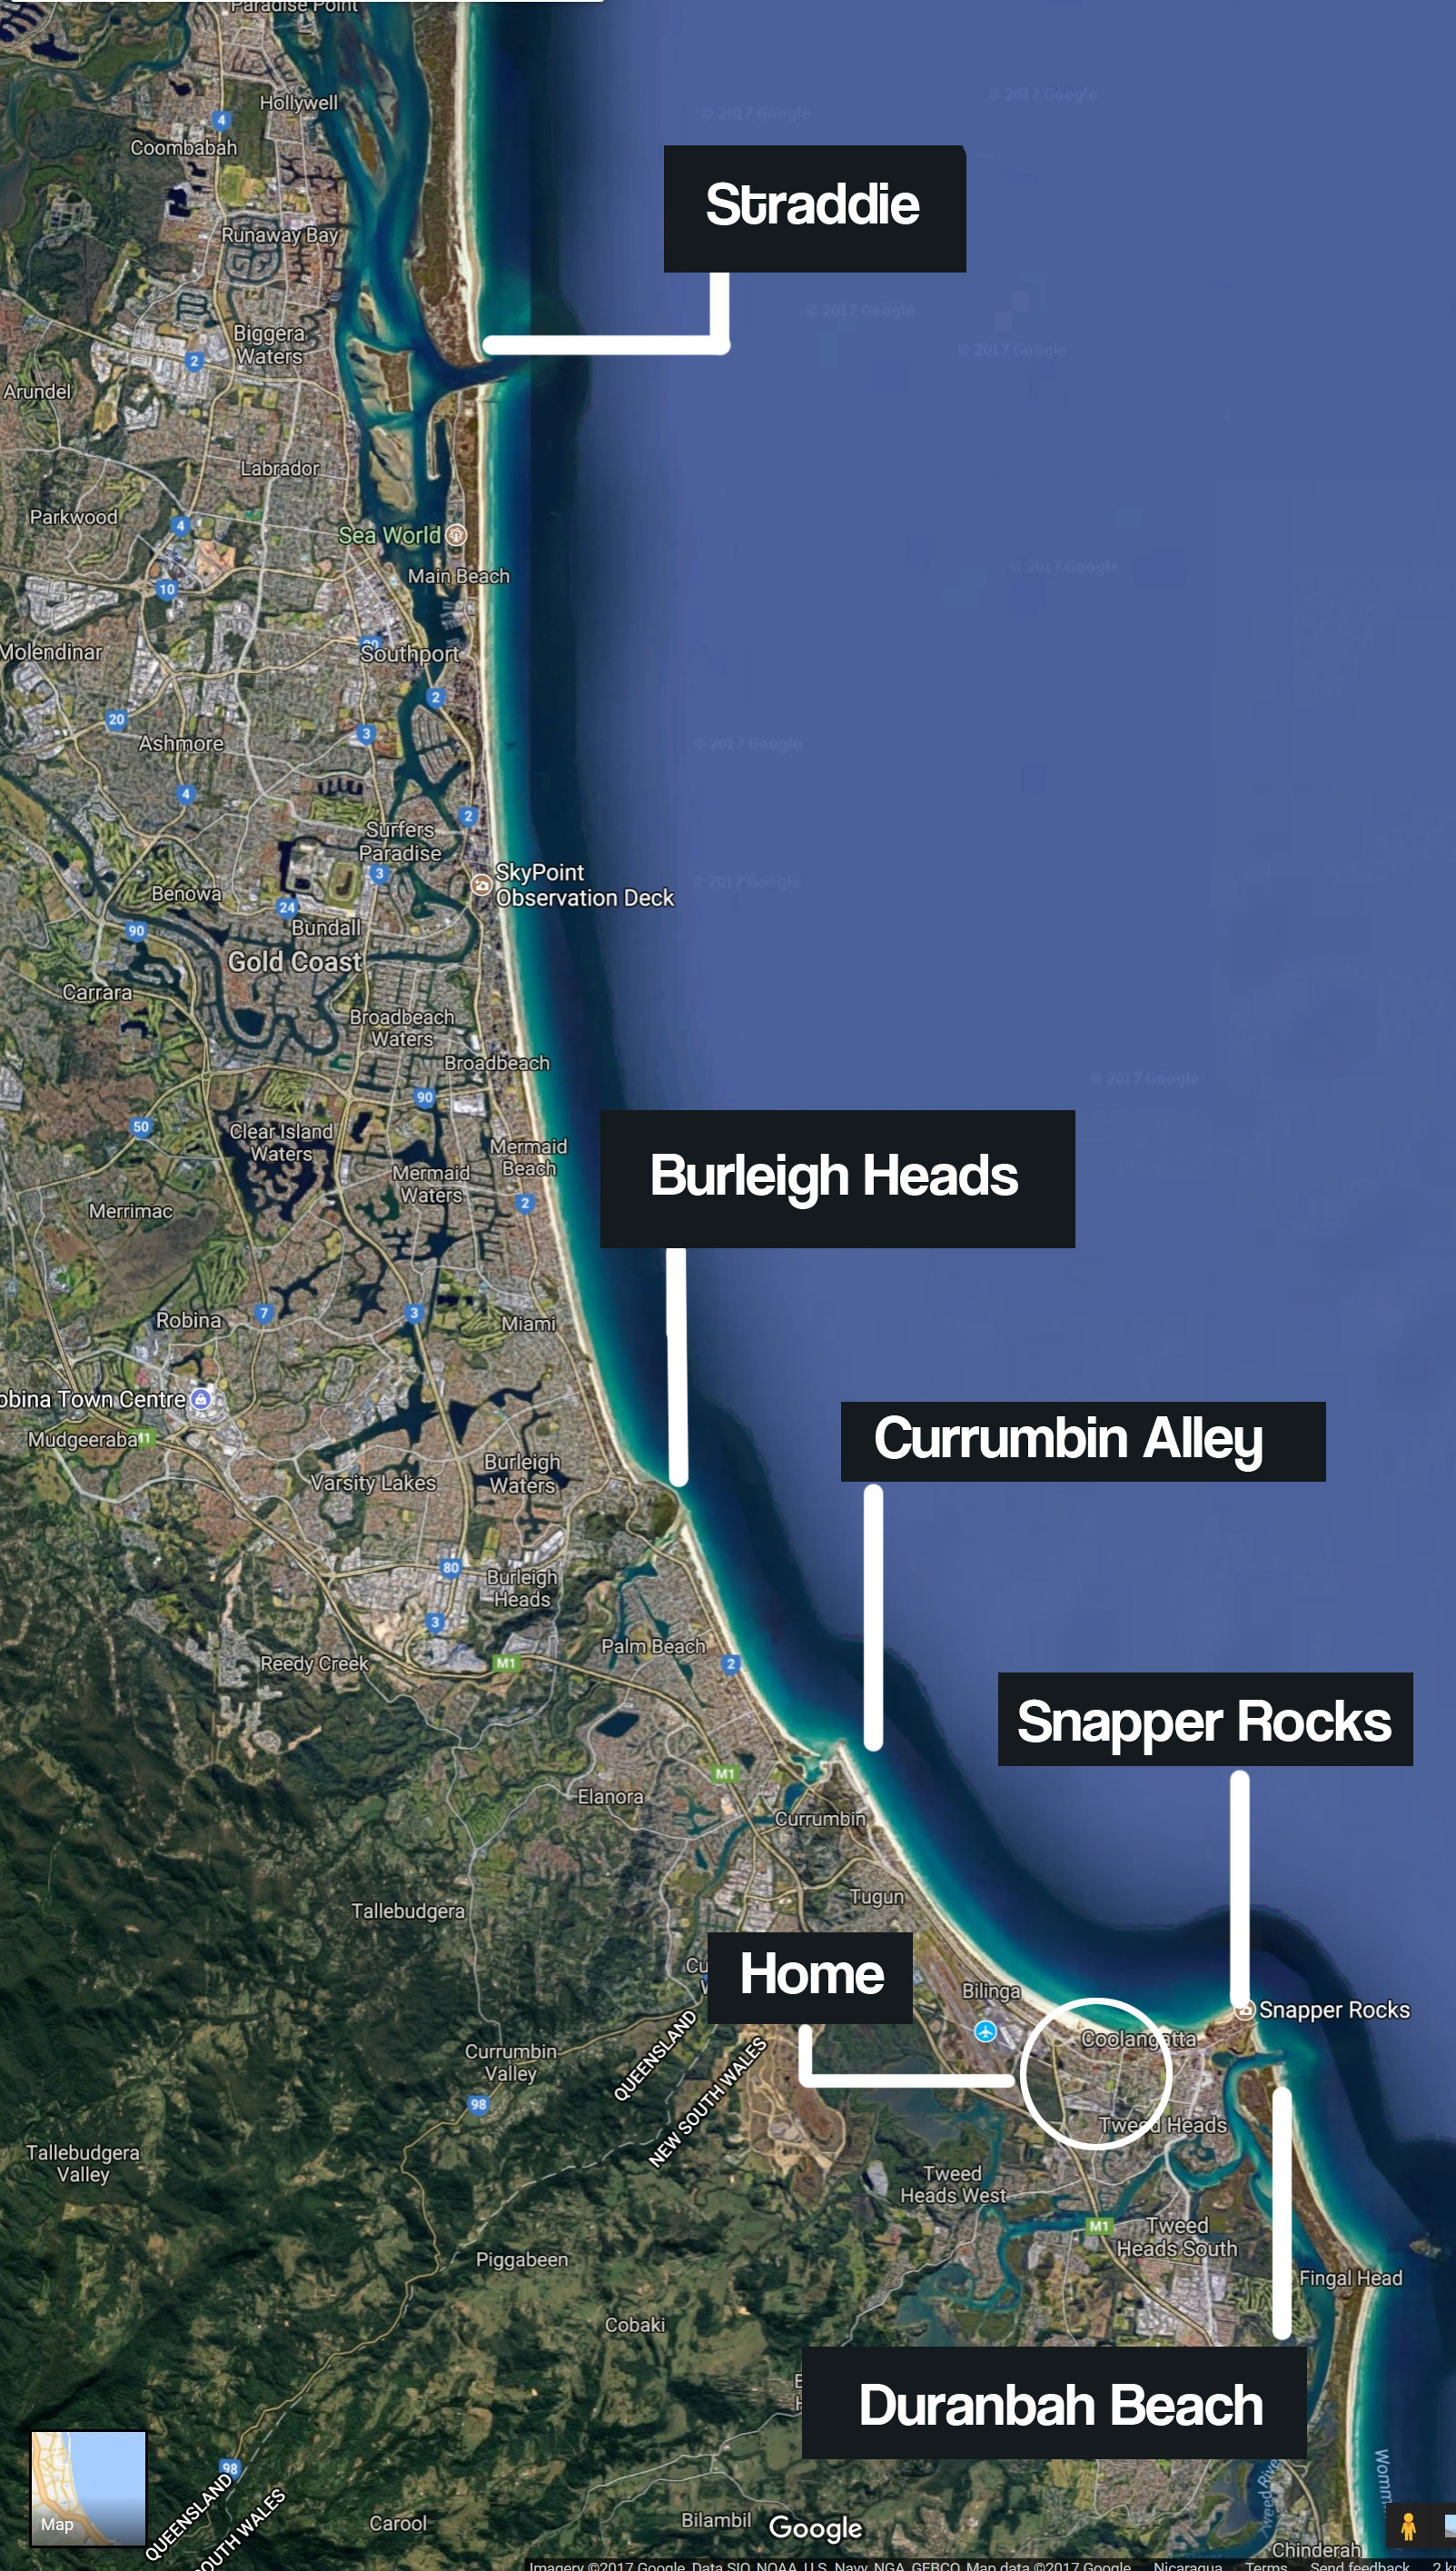 Gold Coast Surf Break map